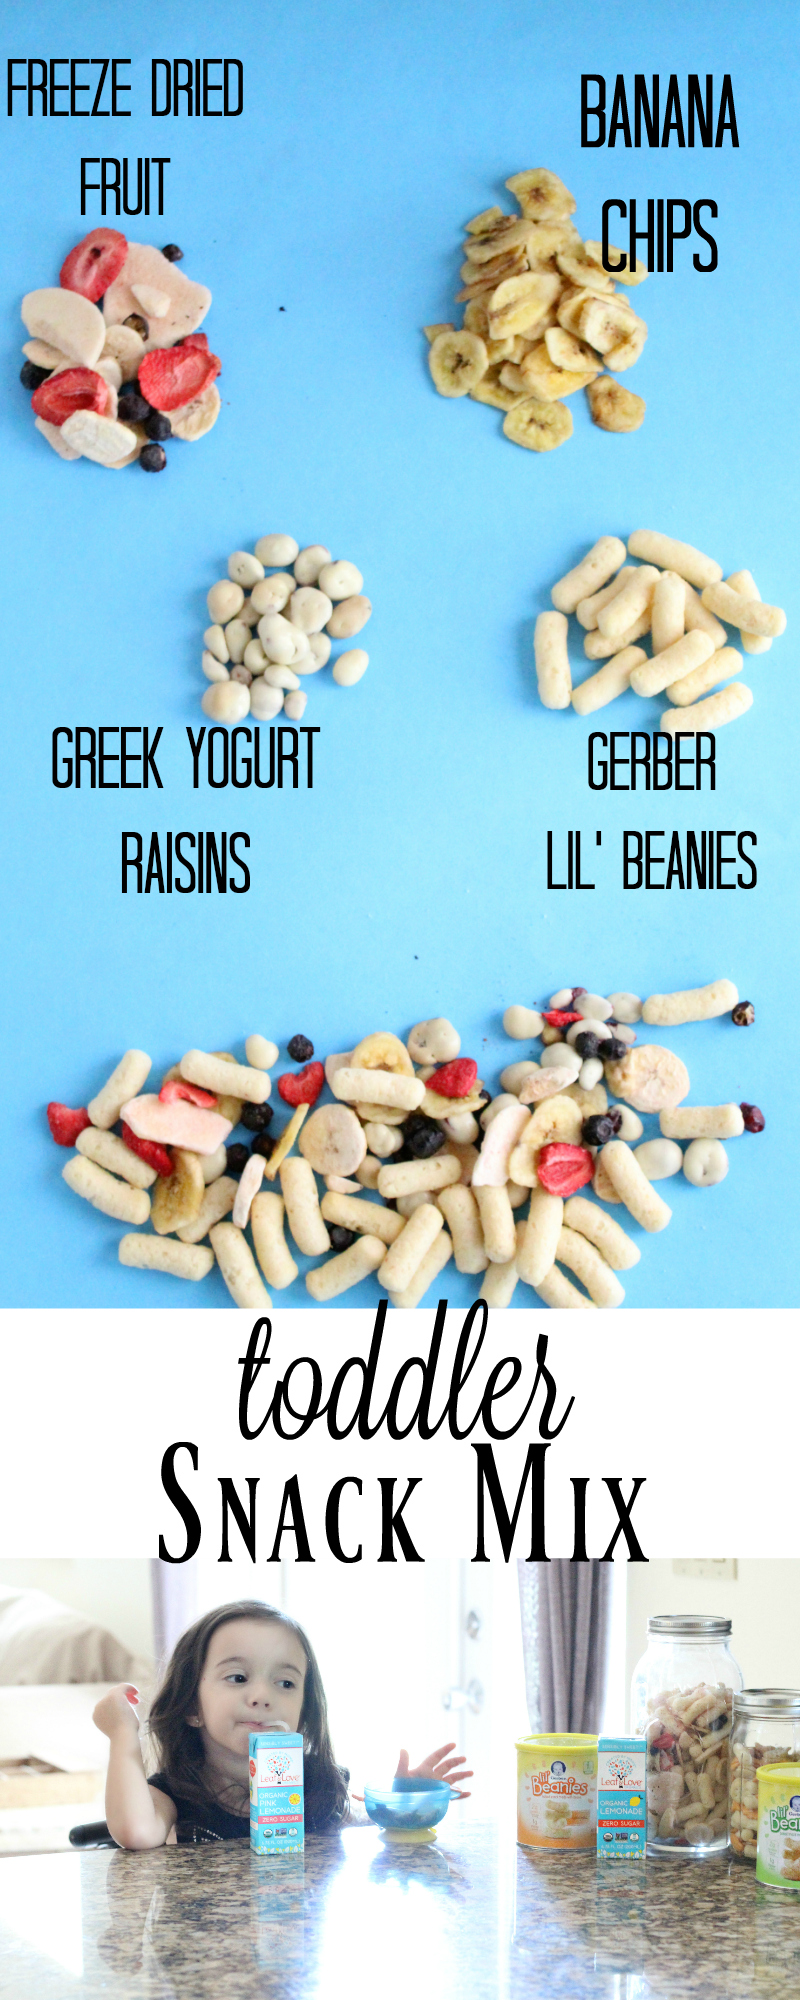 Easy Toddler Snack Mix. Healthy and Nutritious snacks that my kids love! Gerber Lil Beanies >> https://ooh.li/1f45437